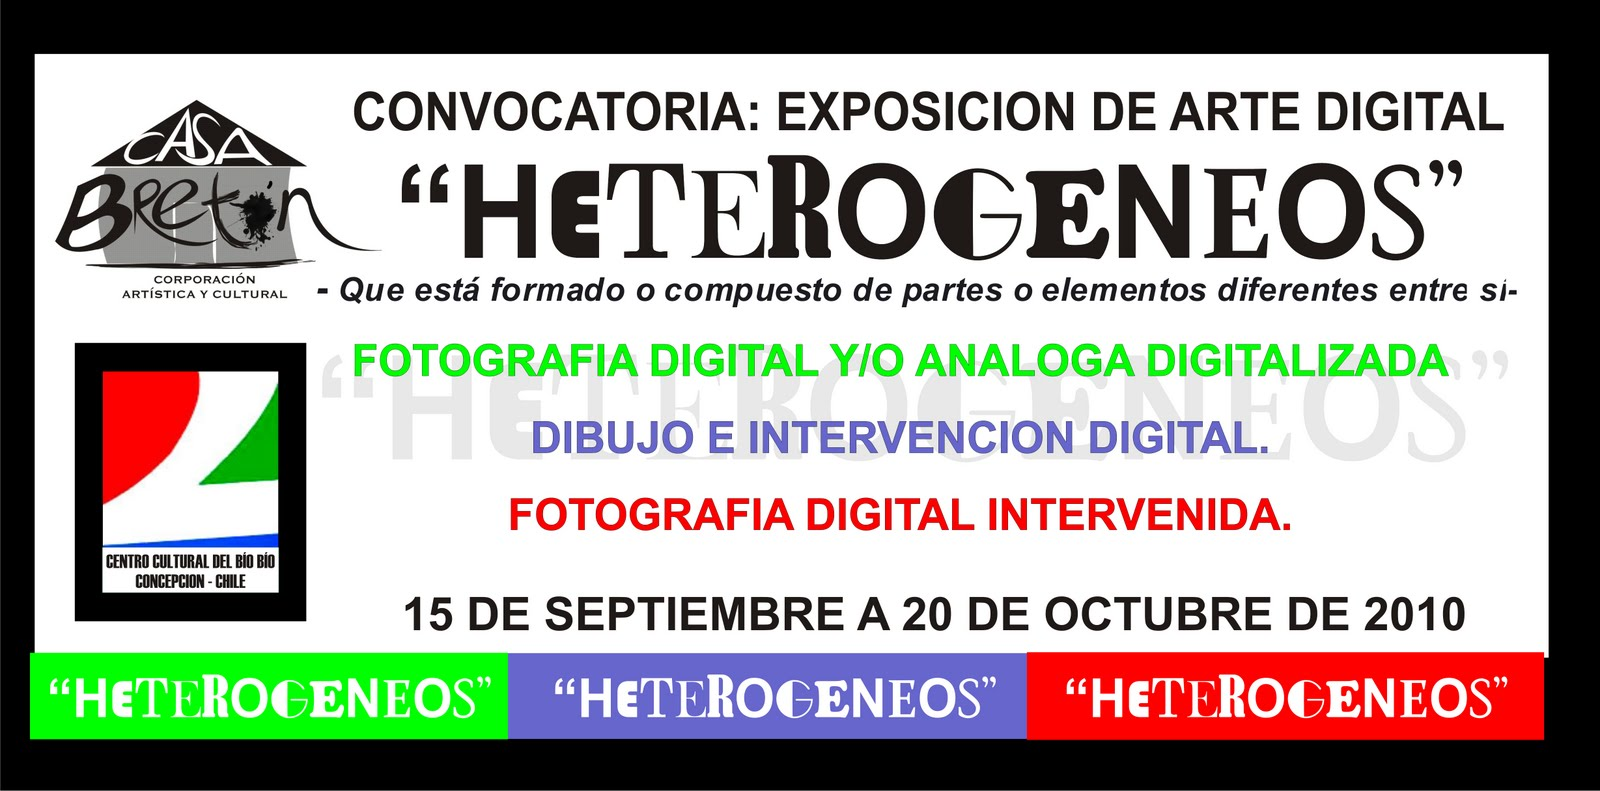 EXPOSICIÓN DE ARTE DIGITAL HETEROGENEOS